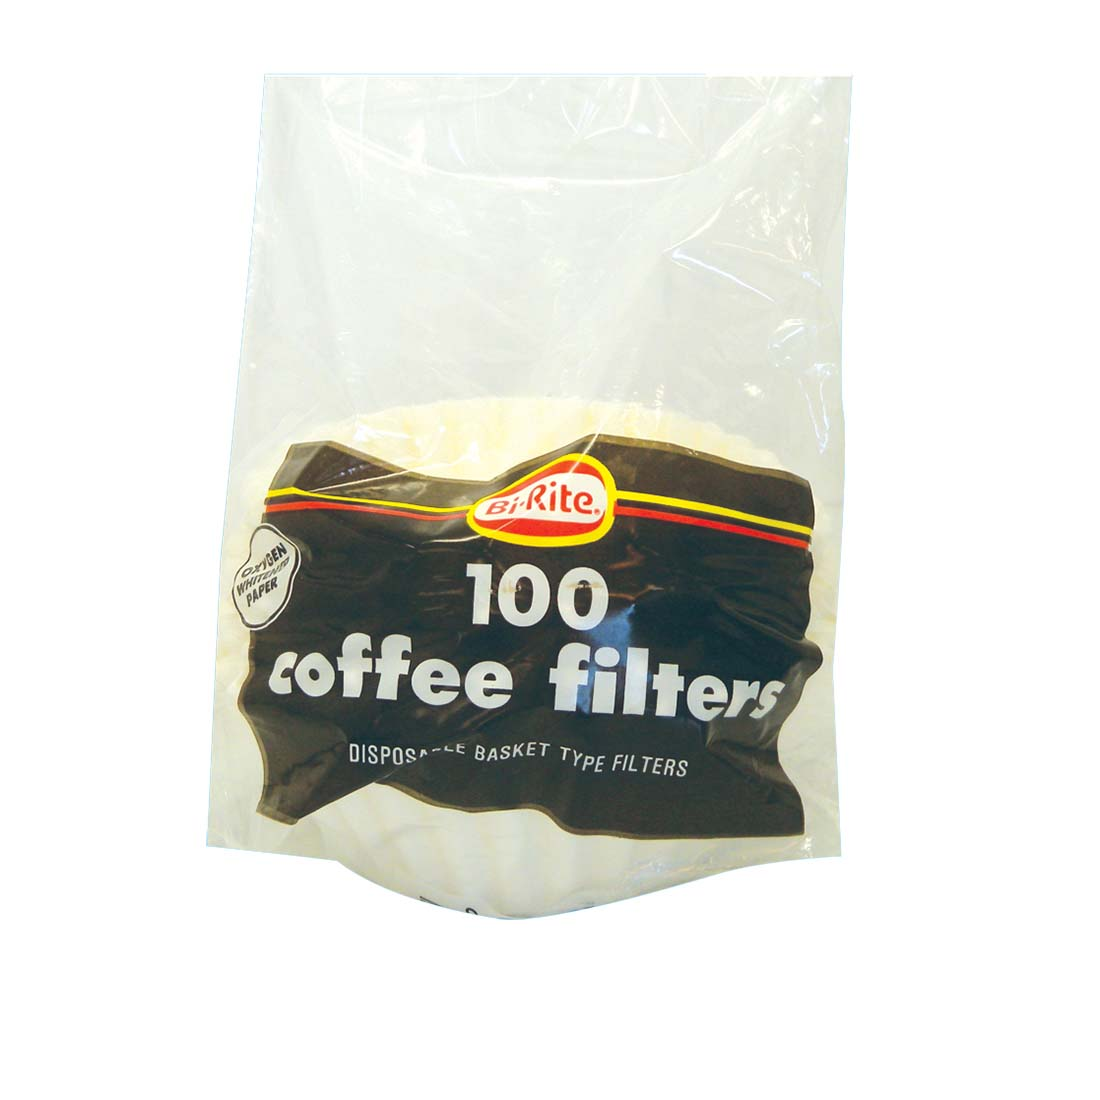 View COFFEE FILTERS 100 CT BASKET